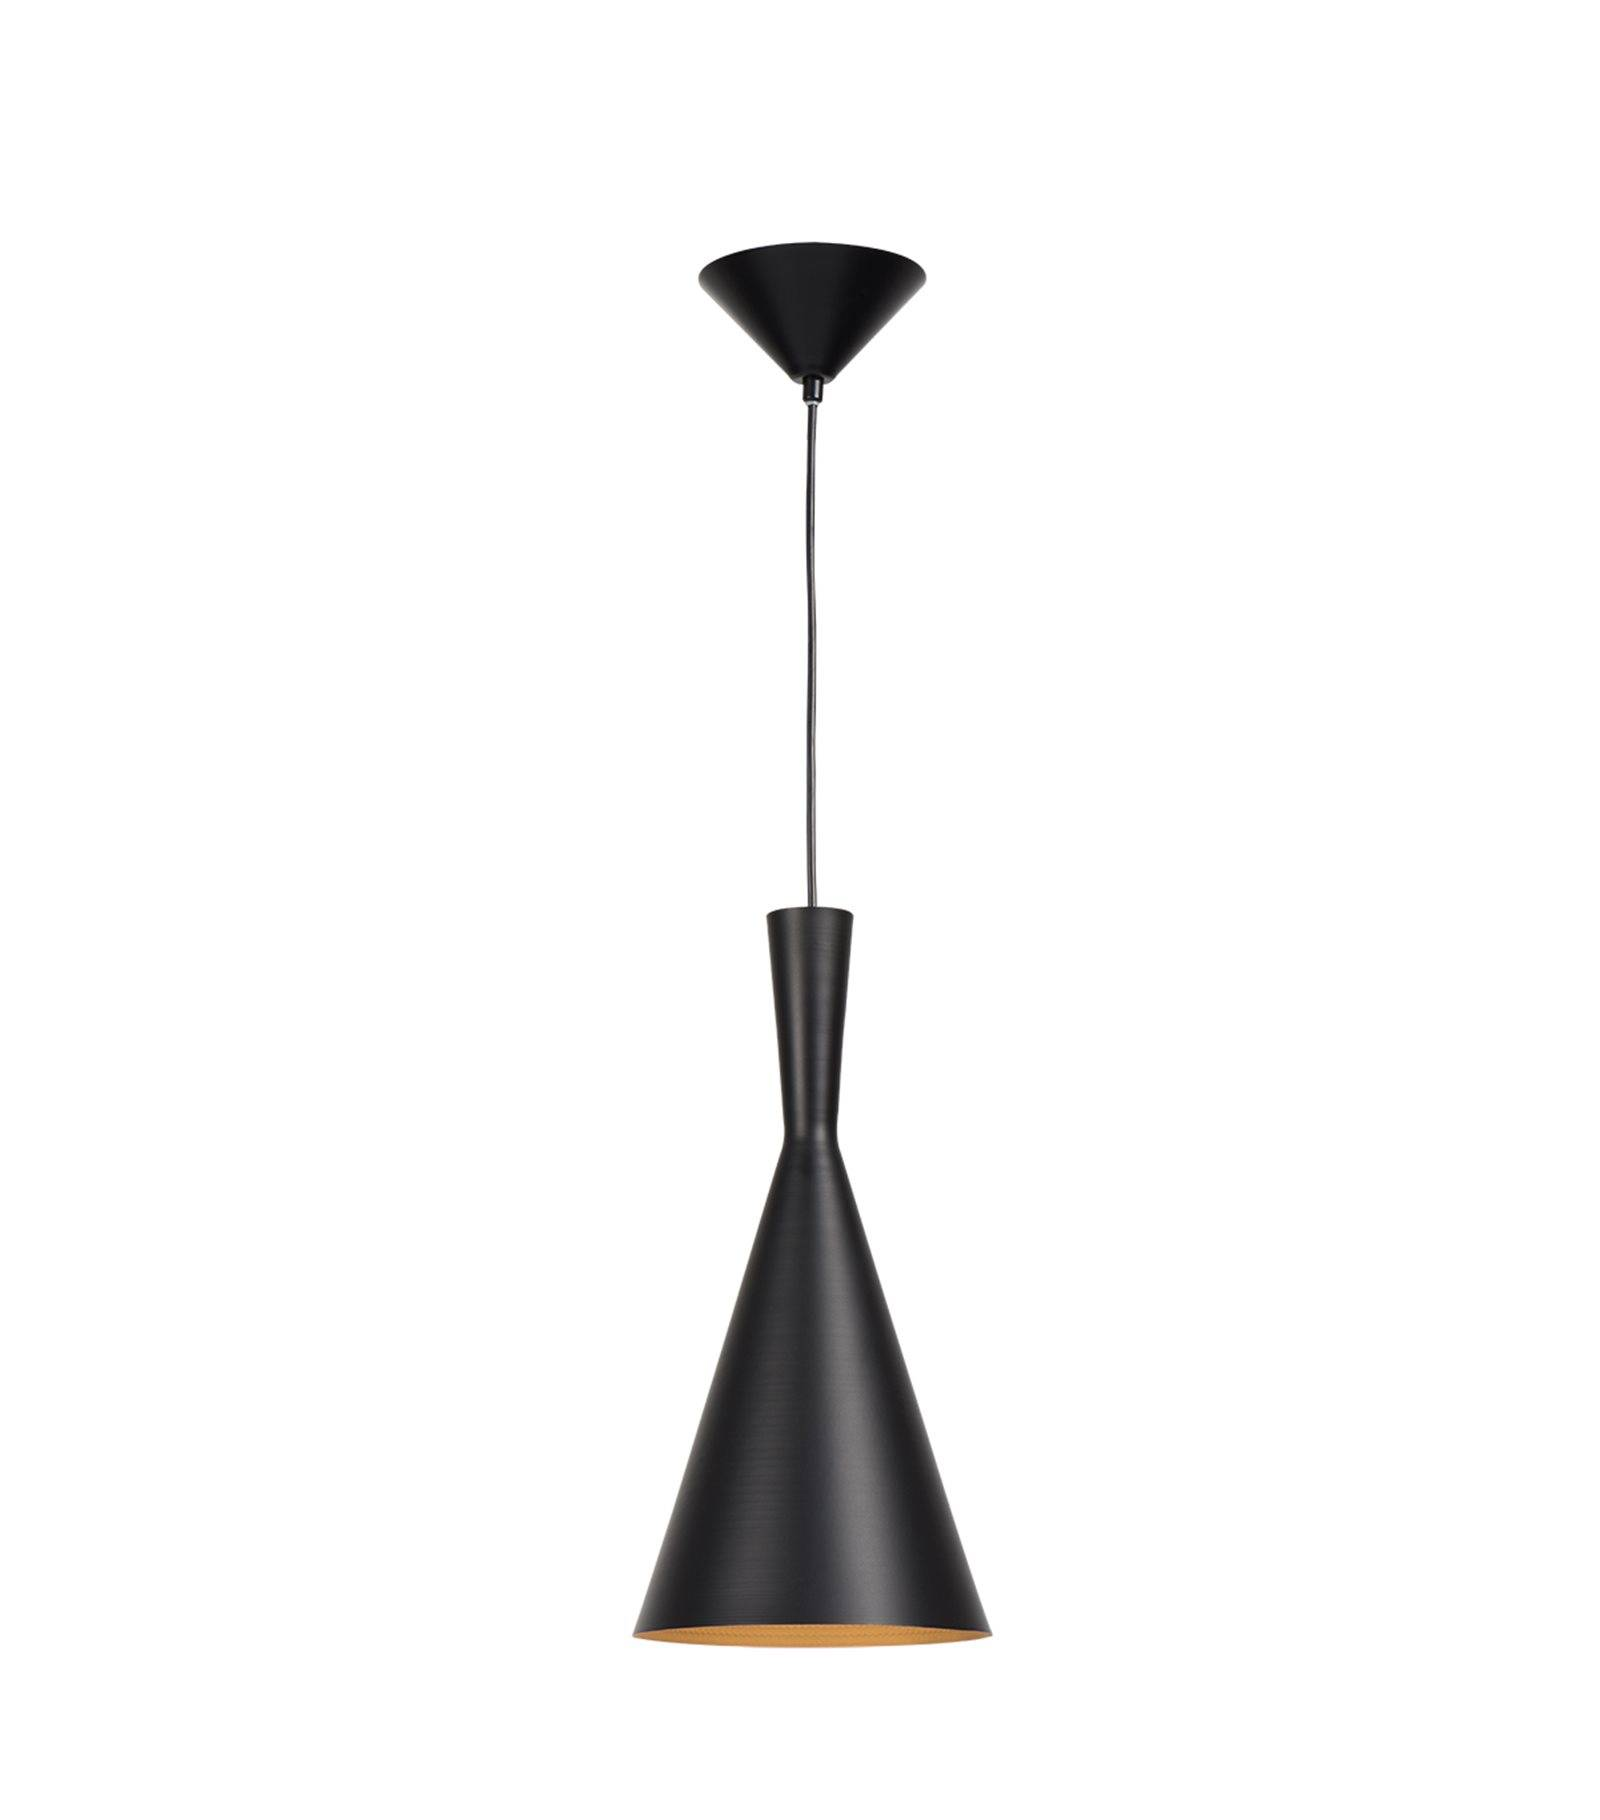 Plafonnier luminaire suspension bellie noir conique e27 for Suspension luminaire noir et or